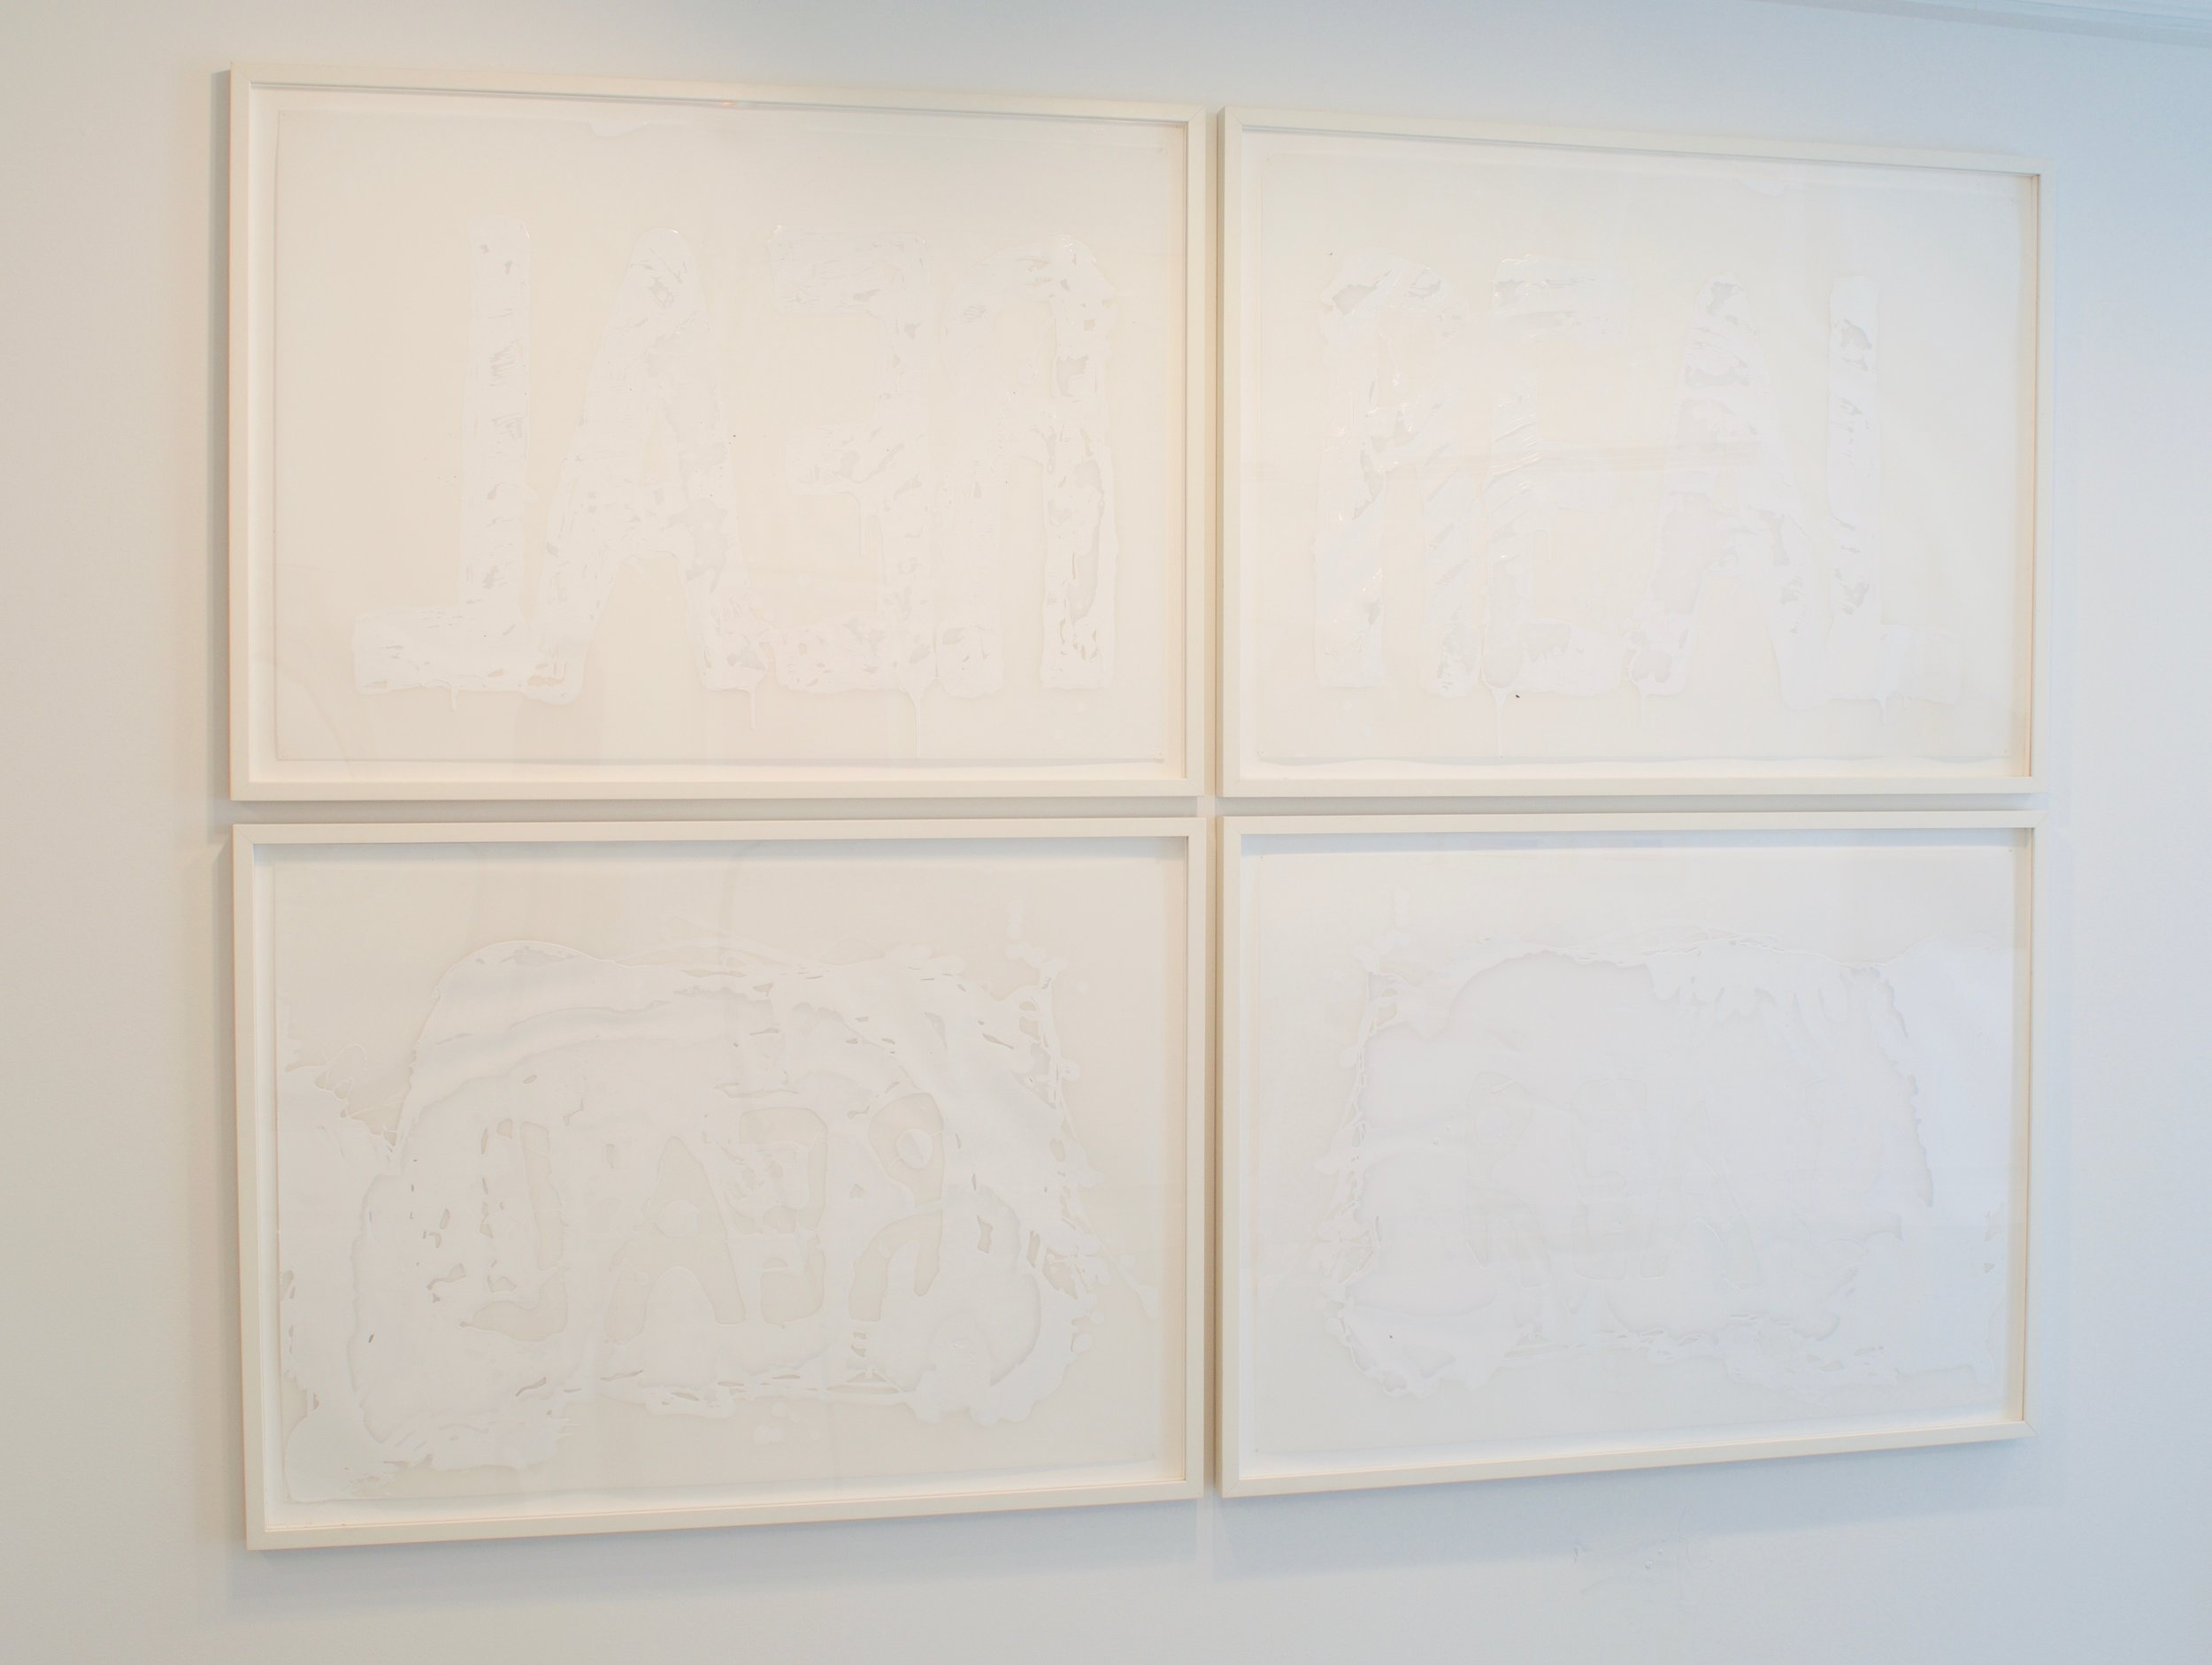 Maya Schindler, Double Real (whole or empty, white), 2019. Acrylic on Mylar,  34 x 92 inches (framed), Diptych